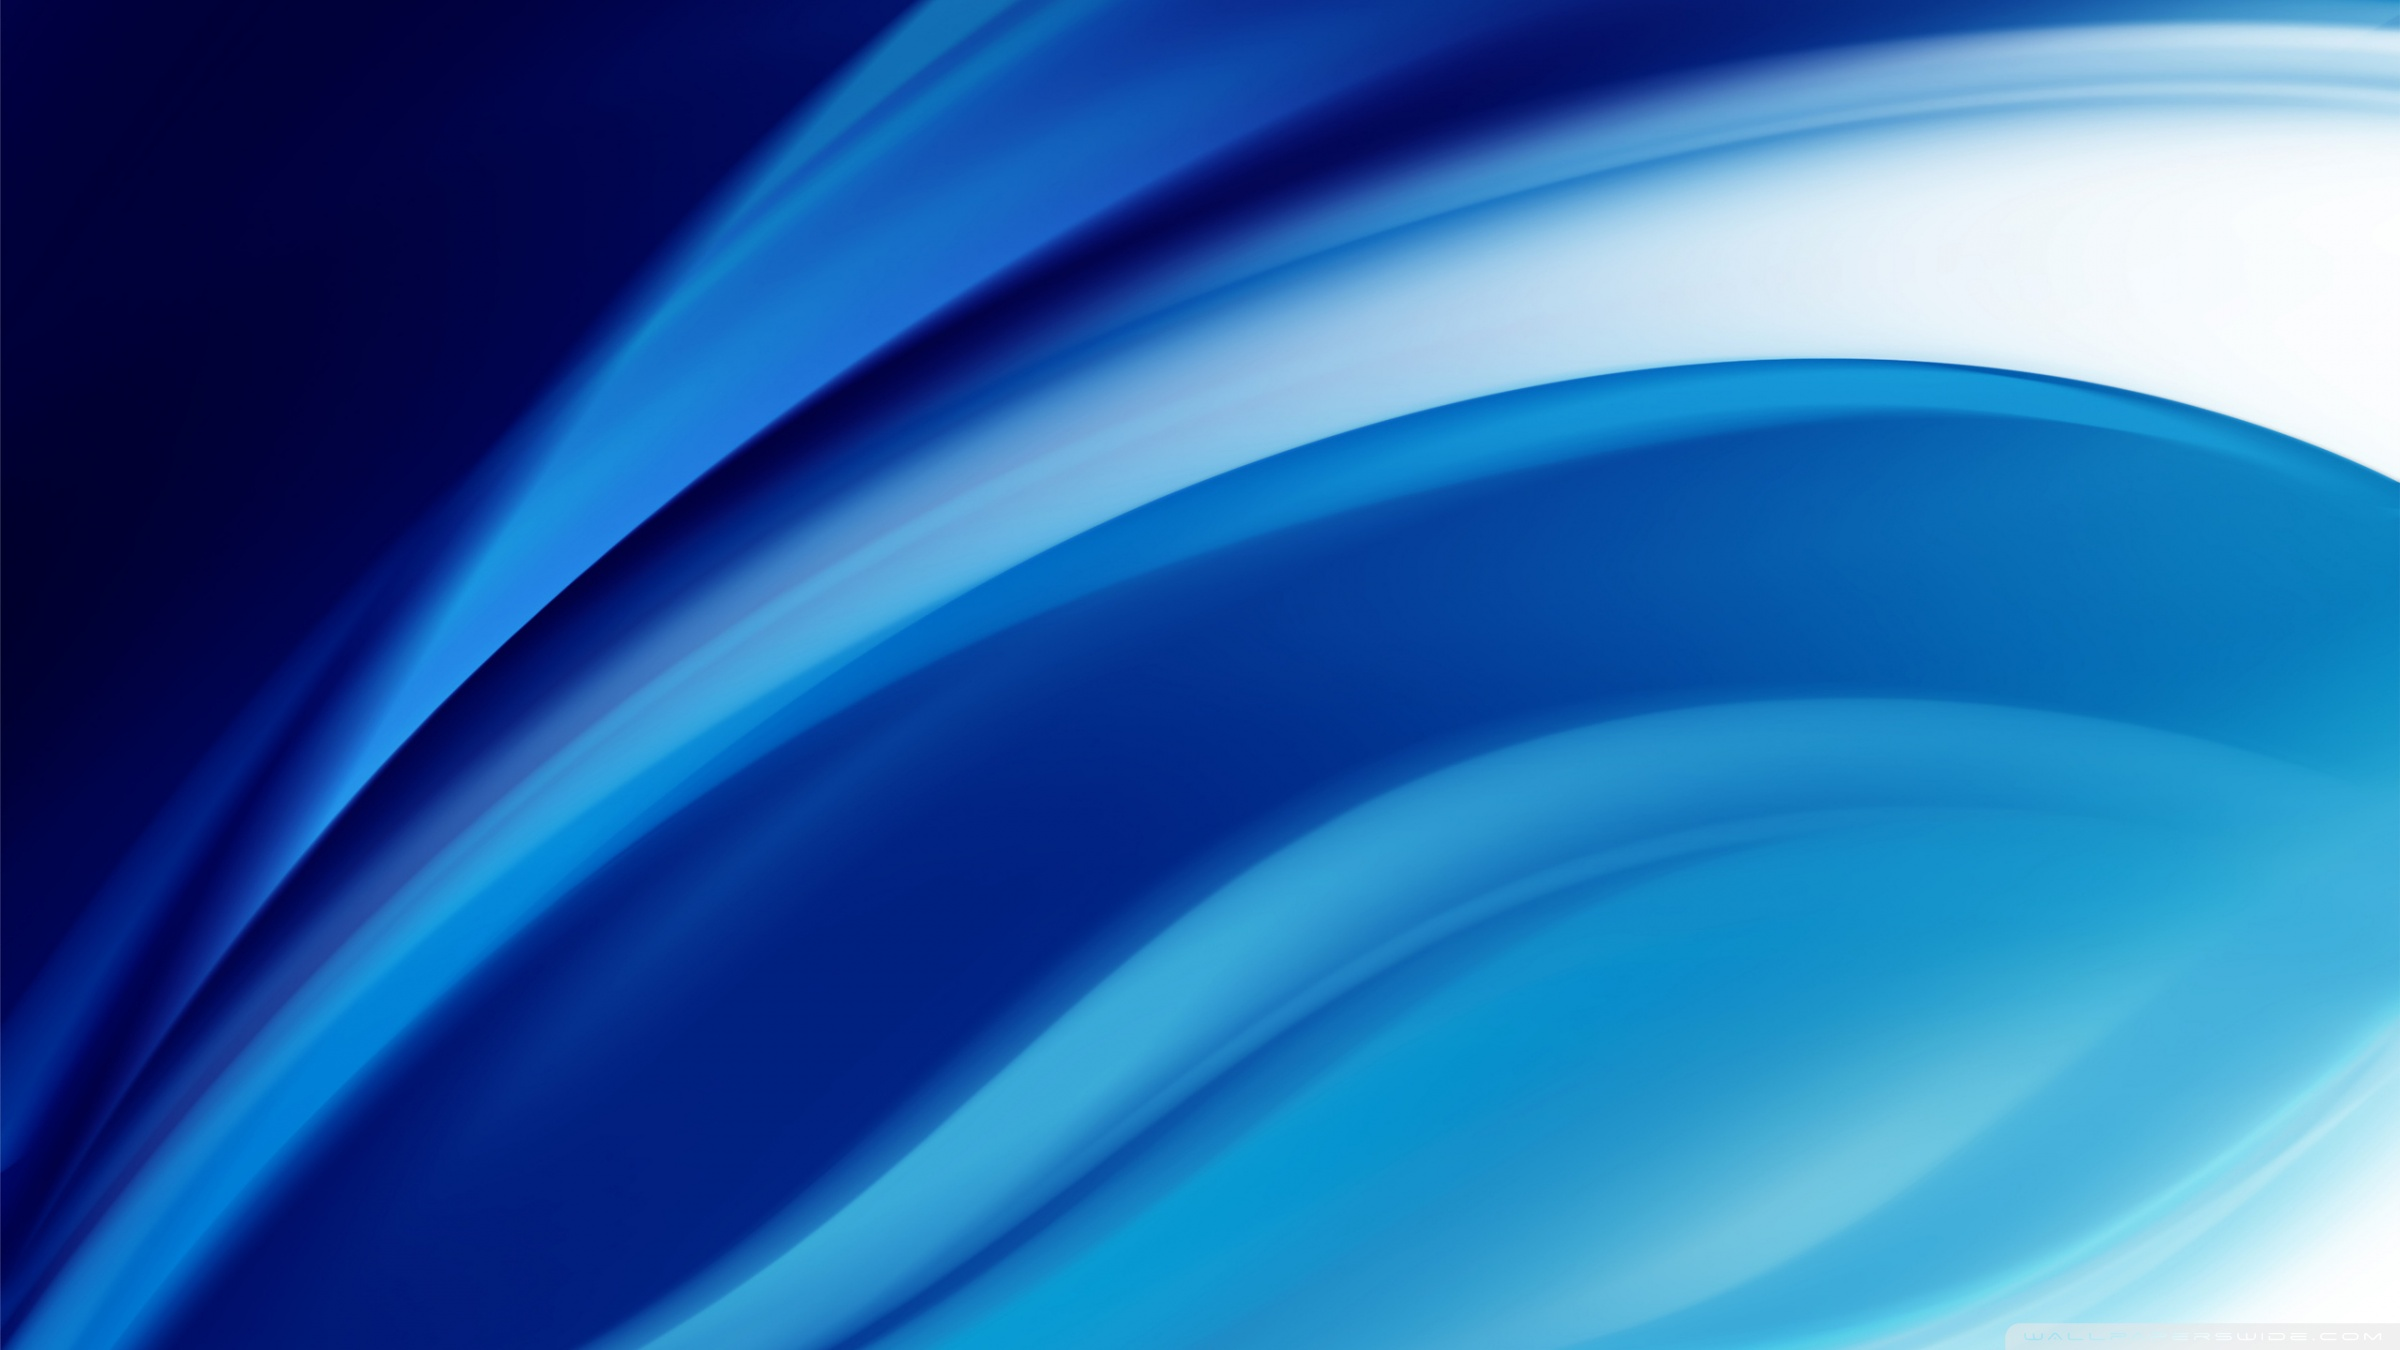 Blue Background Design HD desktop wallpaper : High Definition : Mobile